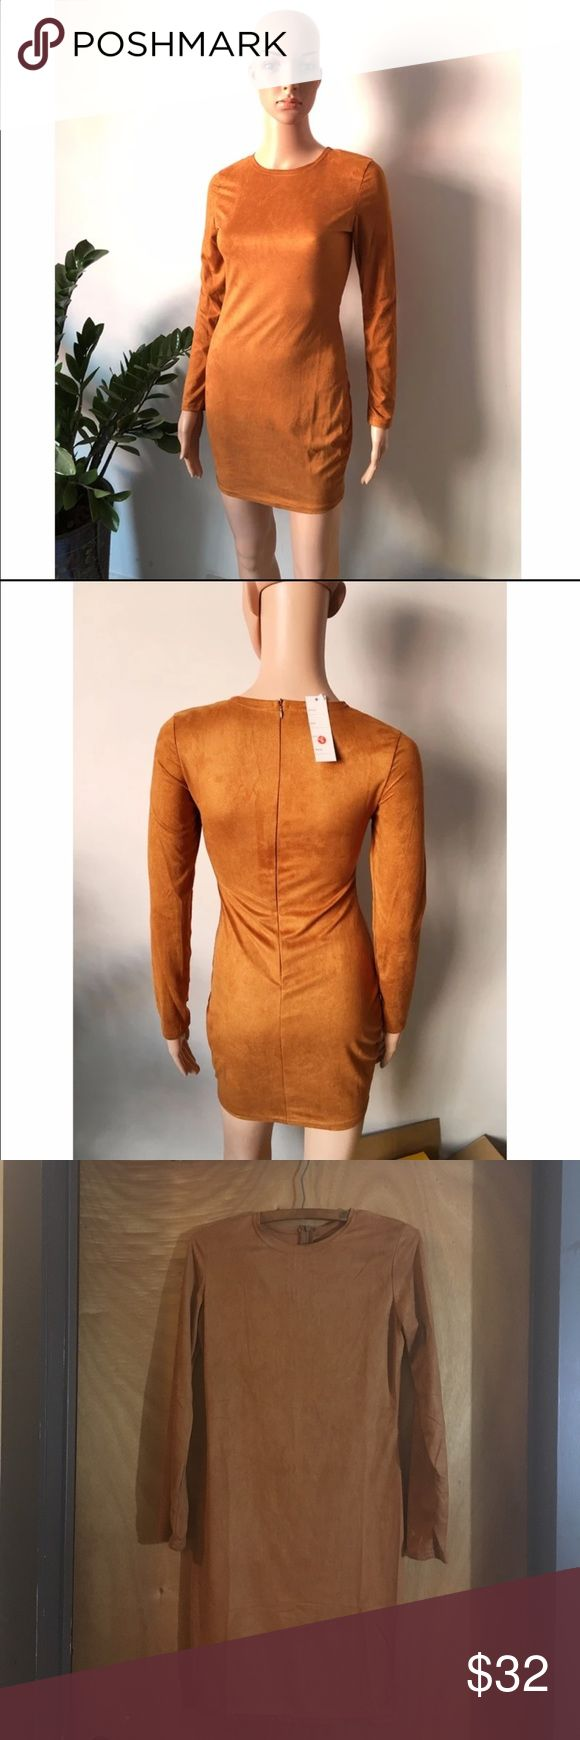 Skin Tight Faux Suede Bodycon Dress. Size S Long Sleeves Skin Tight Faux Suede Bodycon Dress.  Zips at the back. Fabric is beautiful.  Color: camel.  Polyester/microfiber.  Hand wash. Dry flat. Size small Dresses Mini